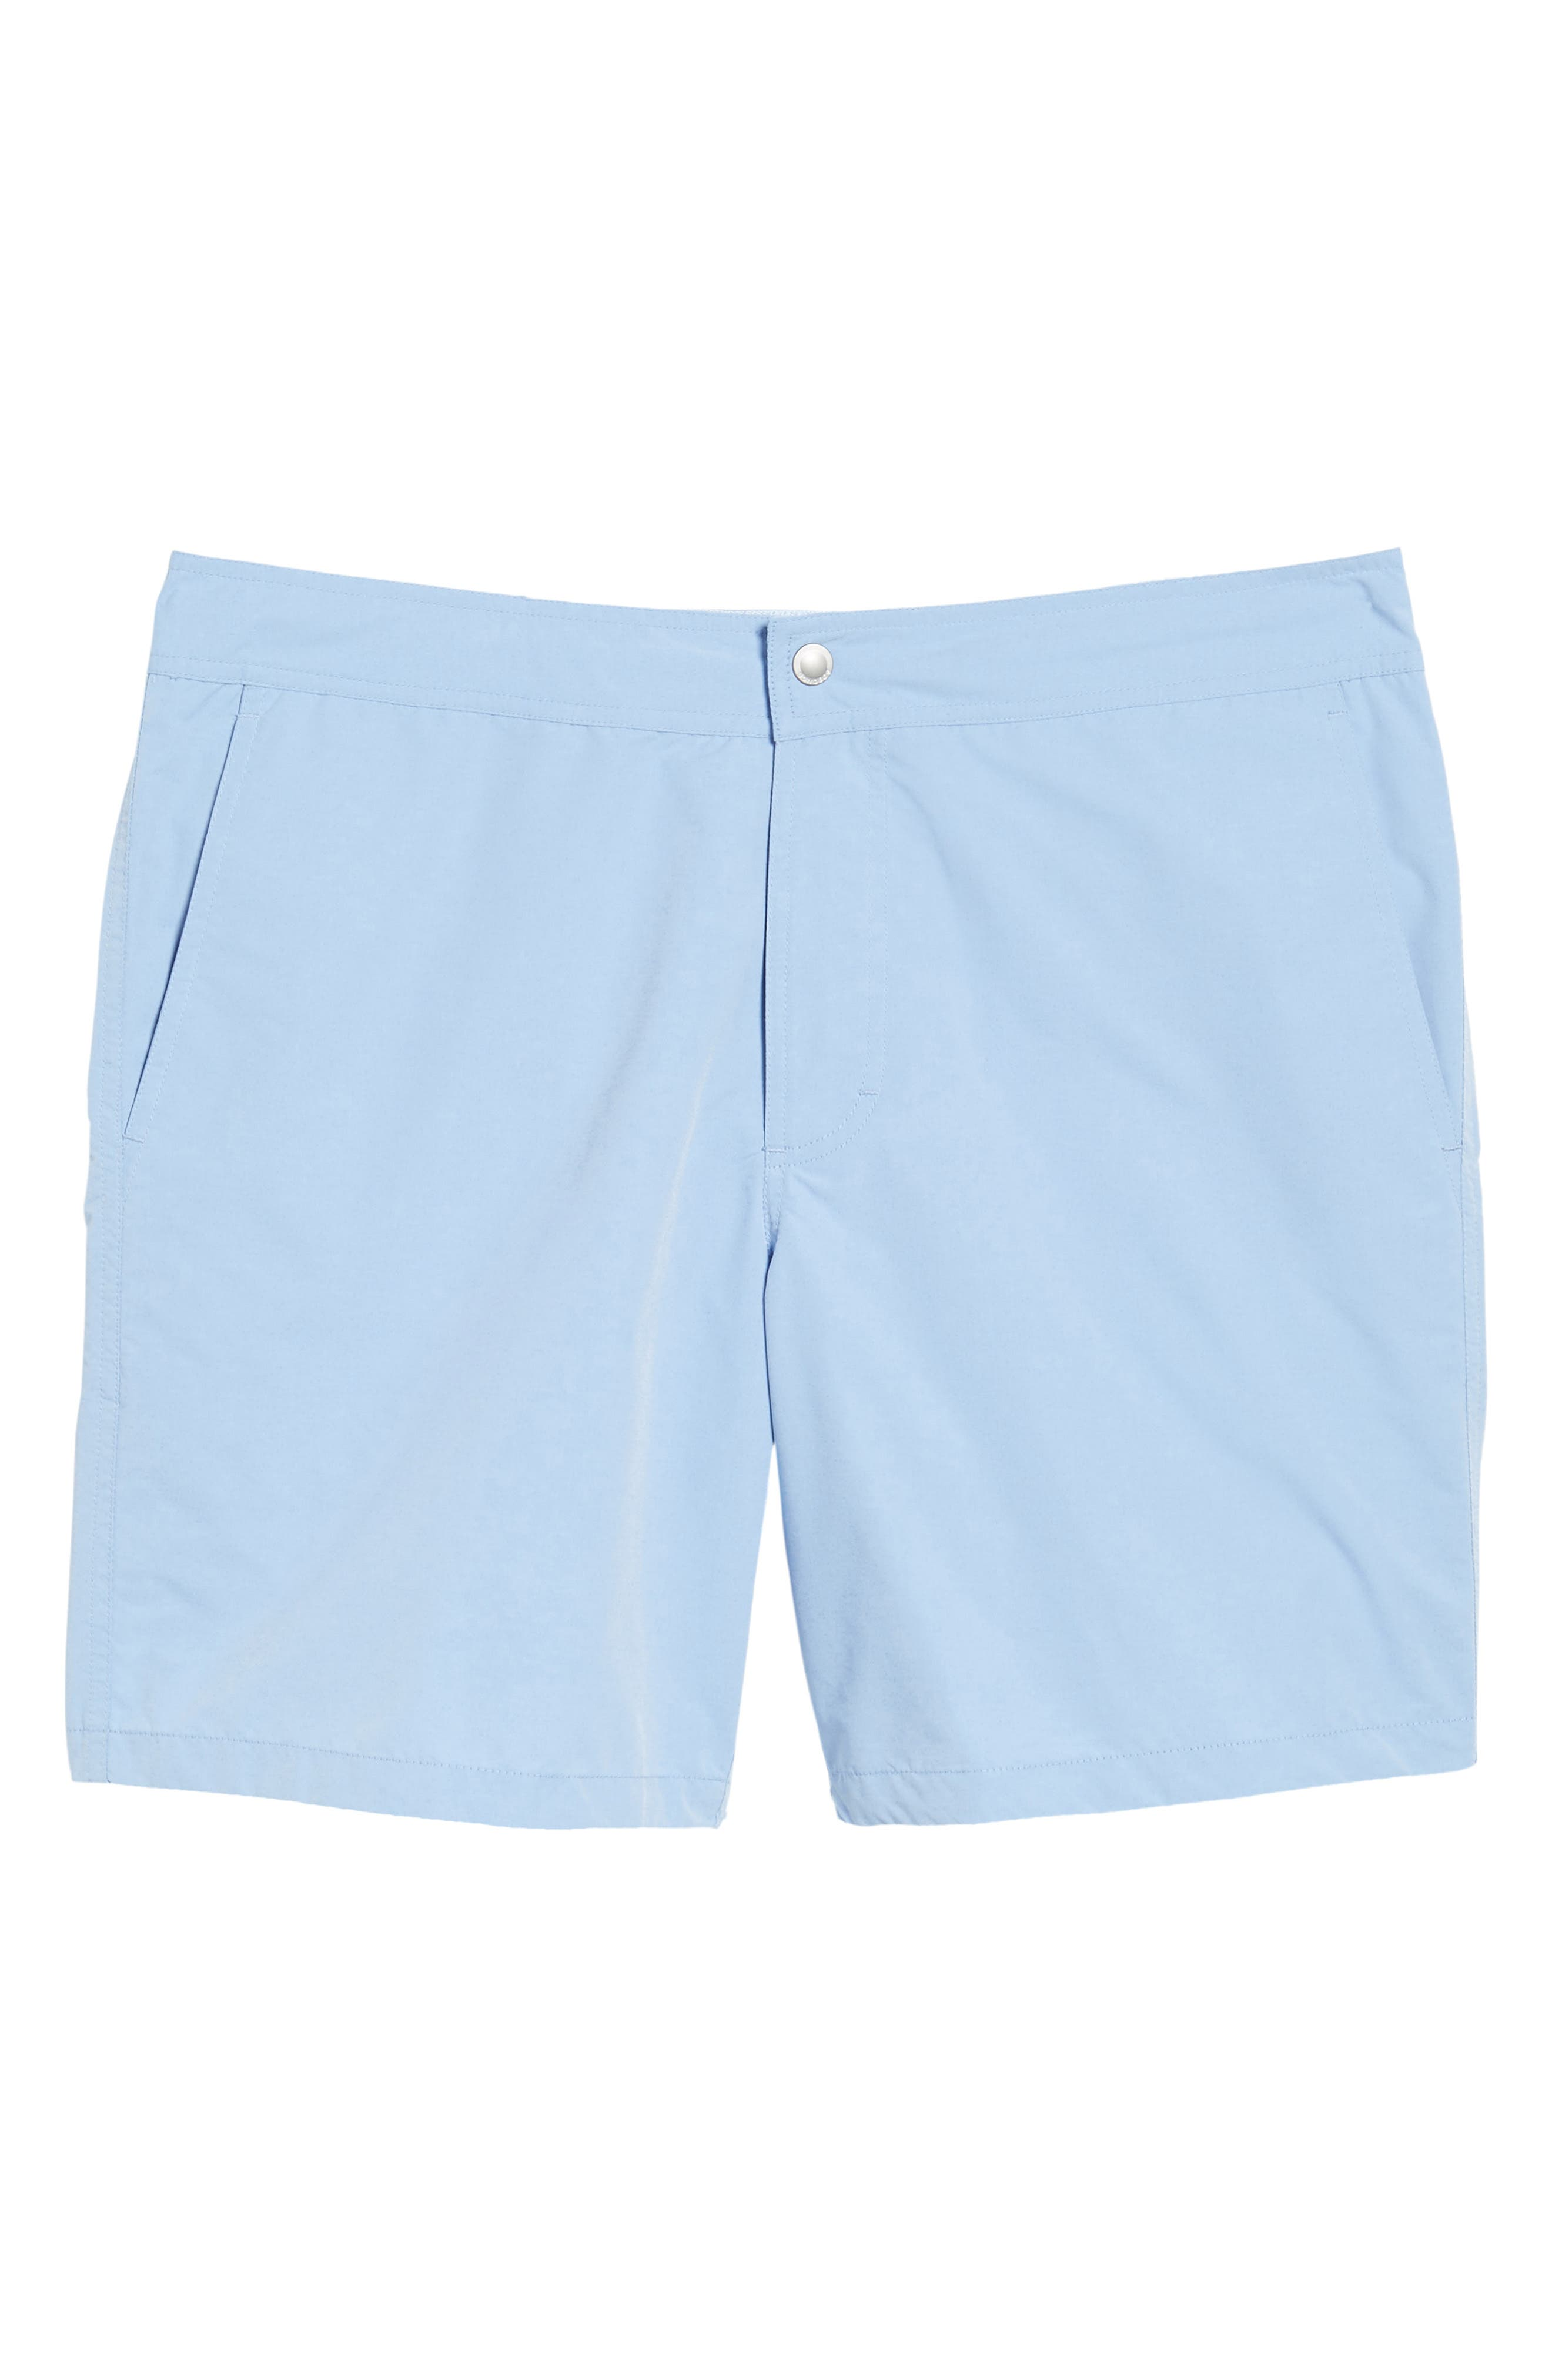 Solid 7-Inch Swim Trunks,                             Alternate thumbnail 6, color,                             Blue Chambray